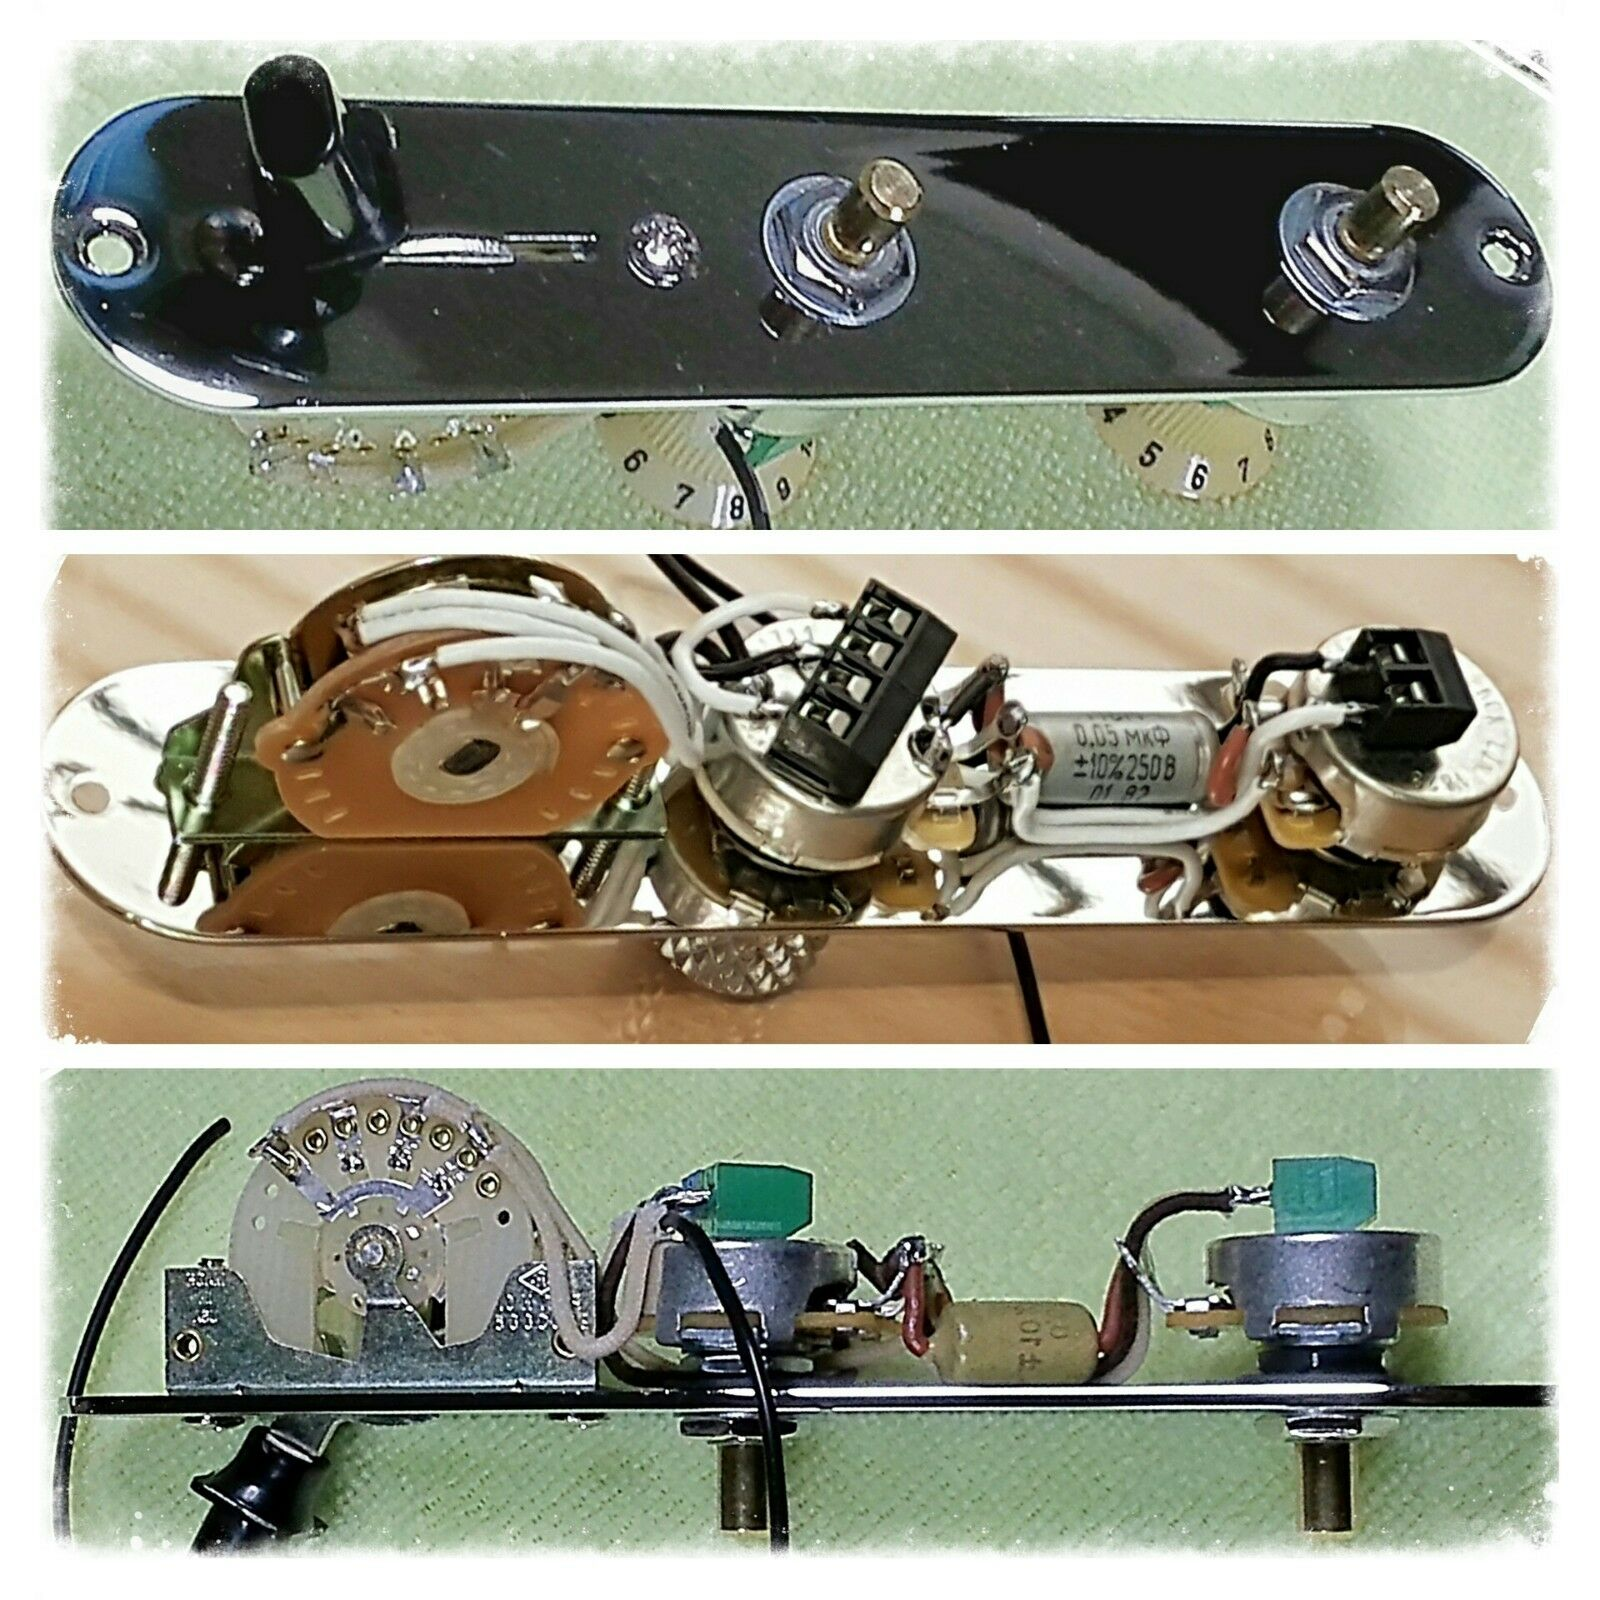 Custom 3 way Fender Telecaster Tele control plate wiring harness upgrade kit